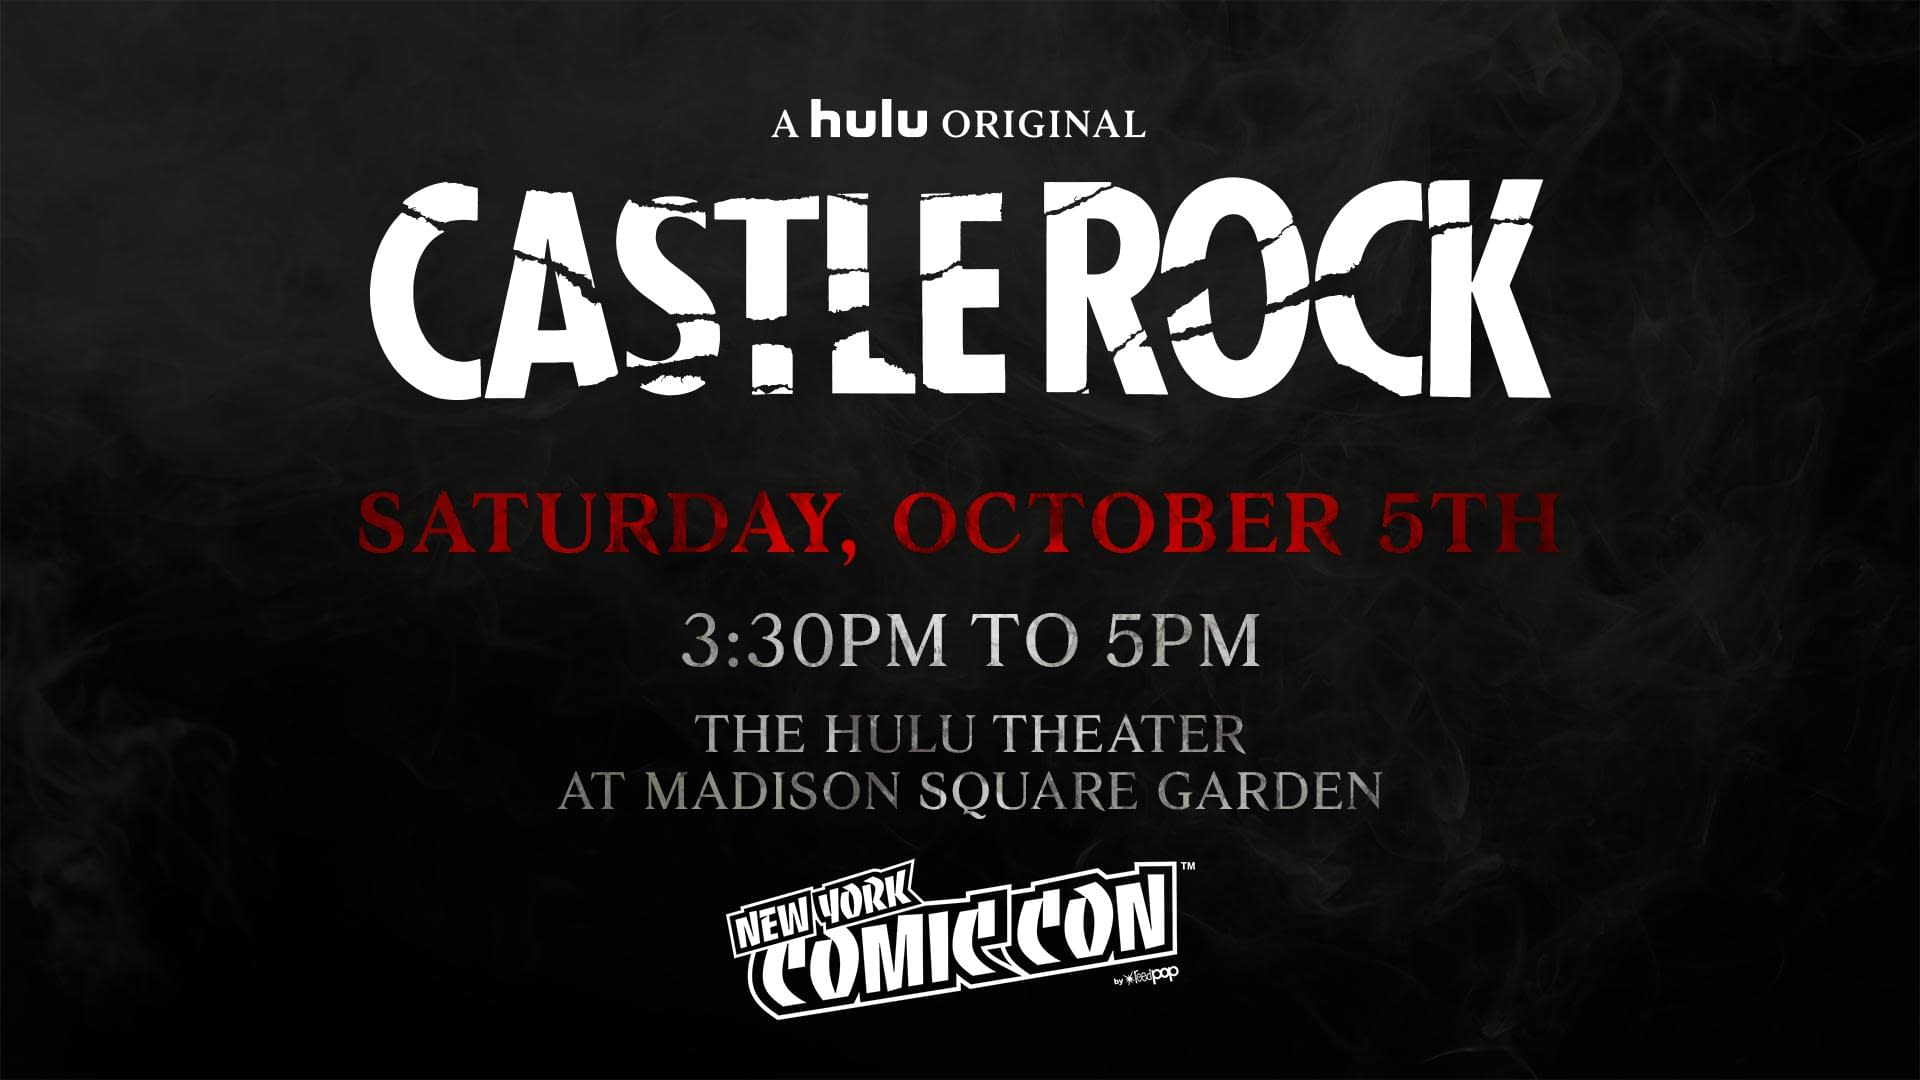 """NYCC Attendees Get Road Map, Clues to """"Castle Rock"""" Season 2 [IMAGES]"""